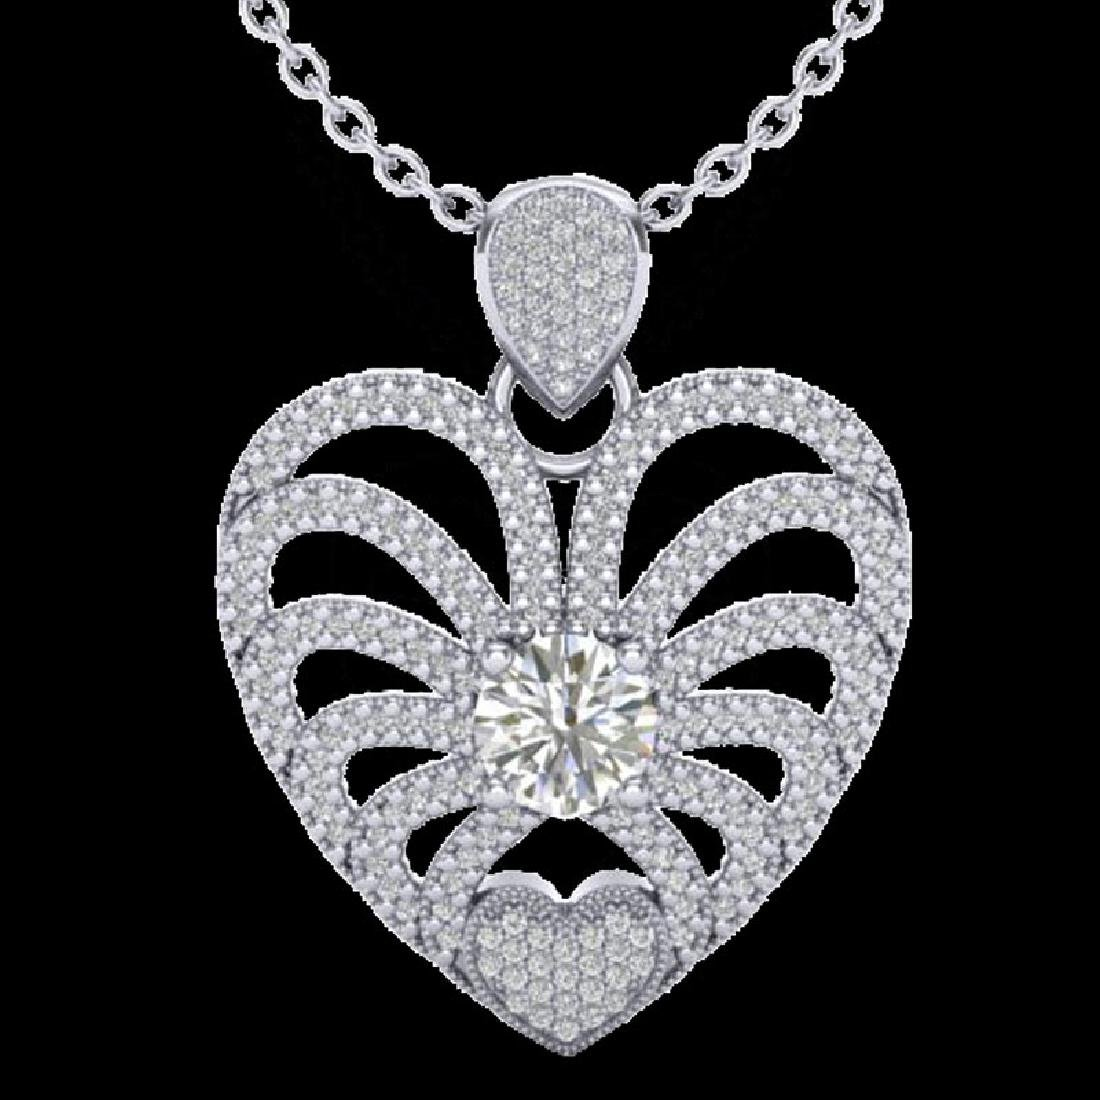 3 CTW Micro Pave VS/SI Diamond Heart Necklace 14K White